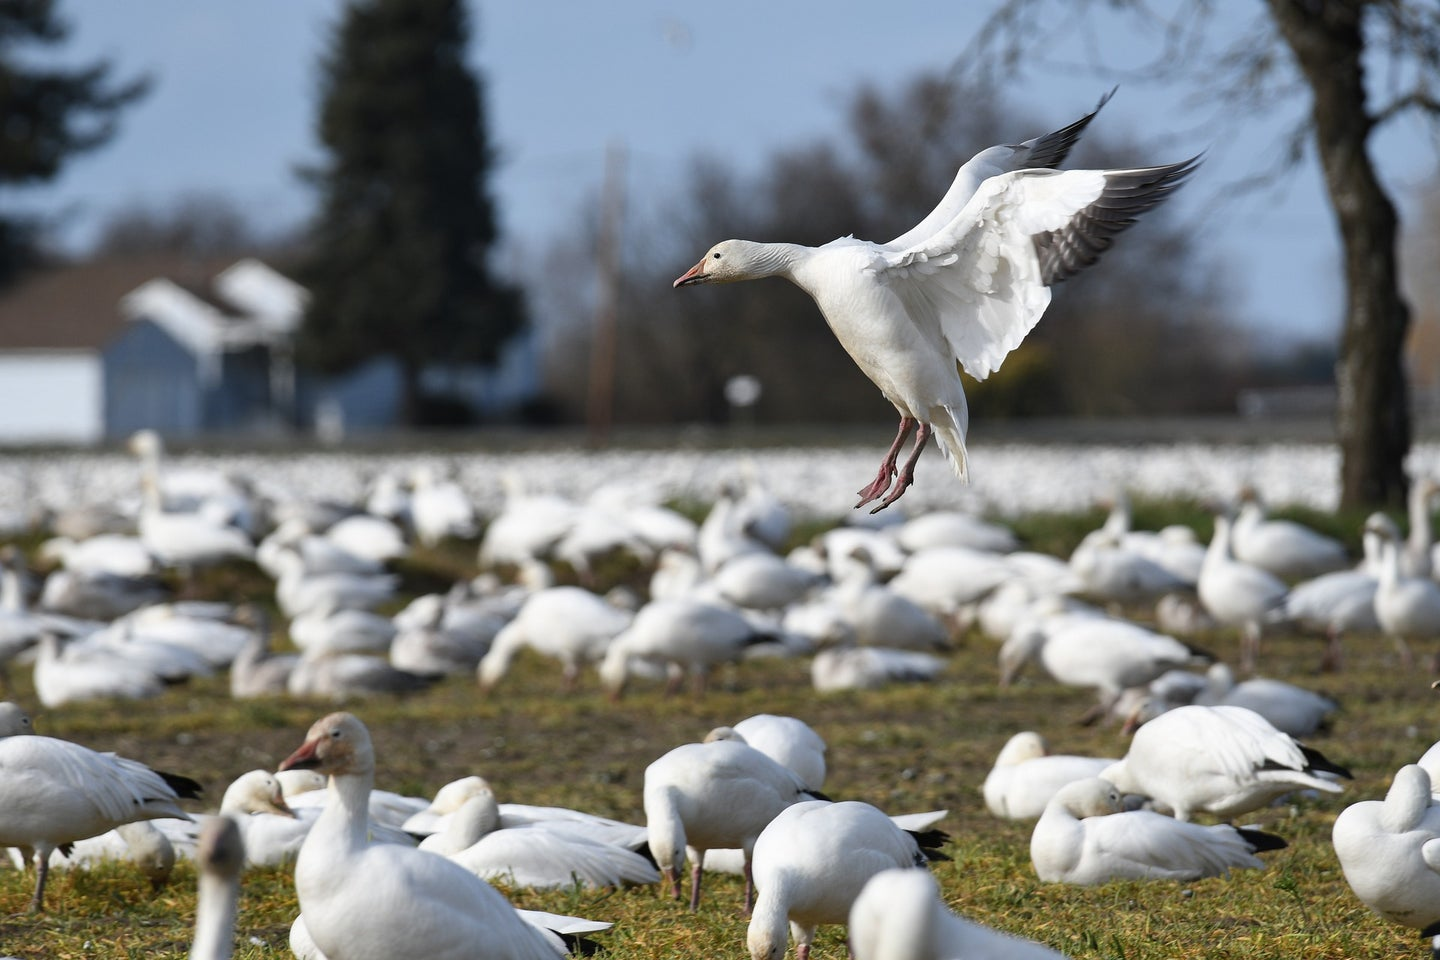 Fewere snow geese are wintering in Texas.